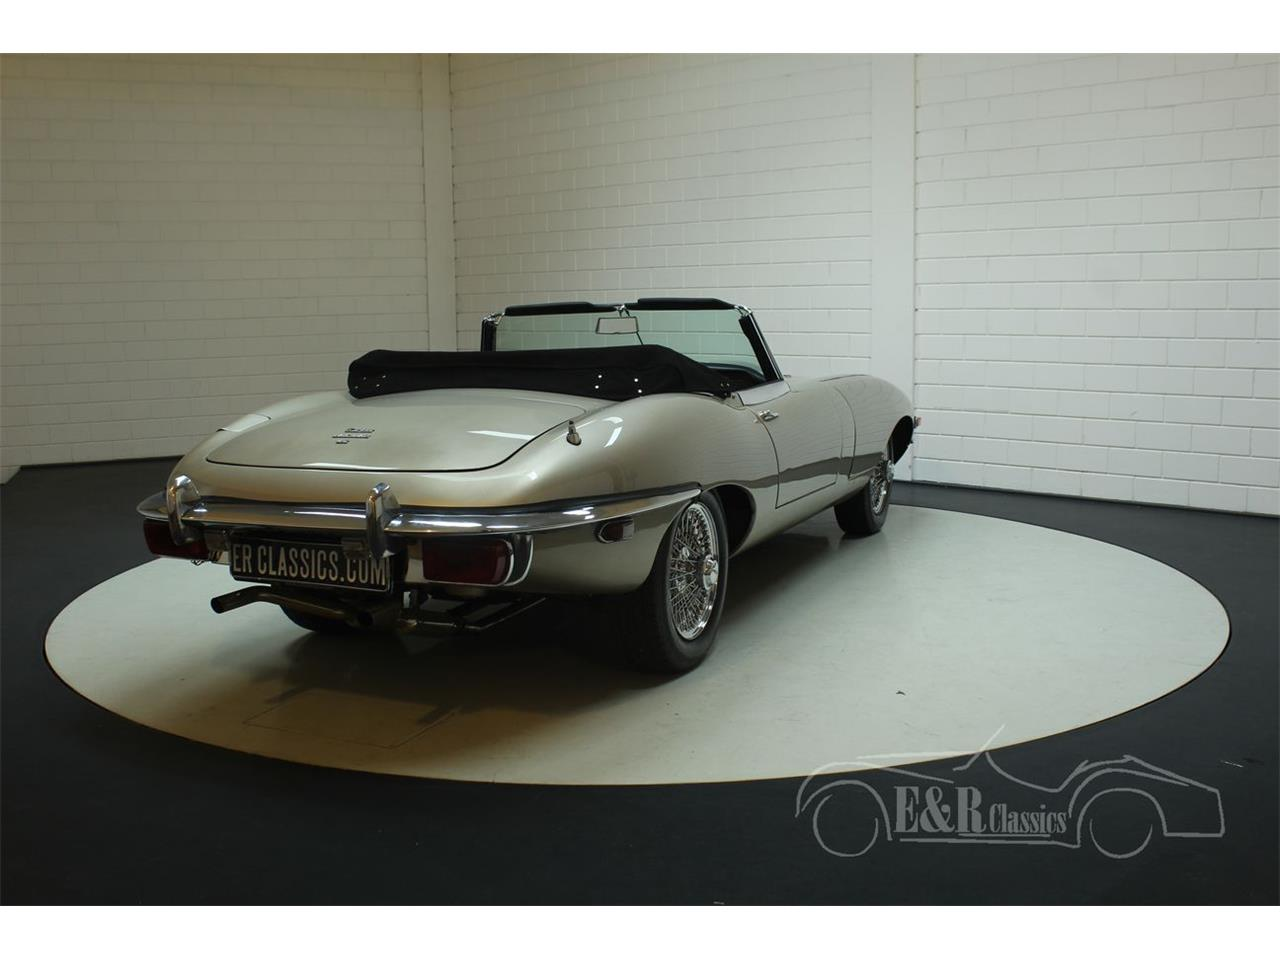 Large Picture of Classic 1970 Jaguar E-Type located in - Keine Angabe - - $112,750.00 Offered by E & R Classics - PH40